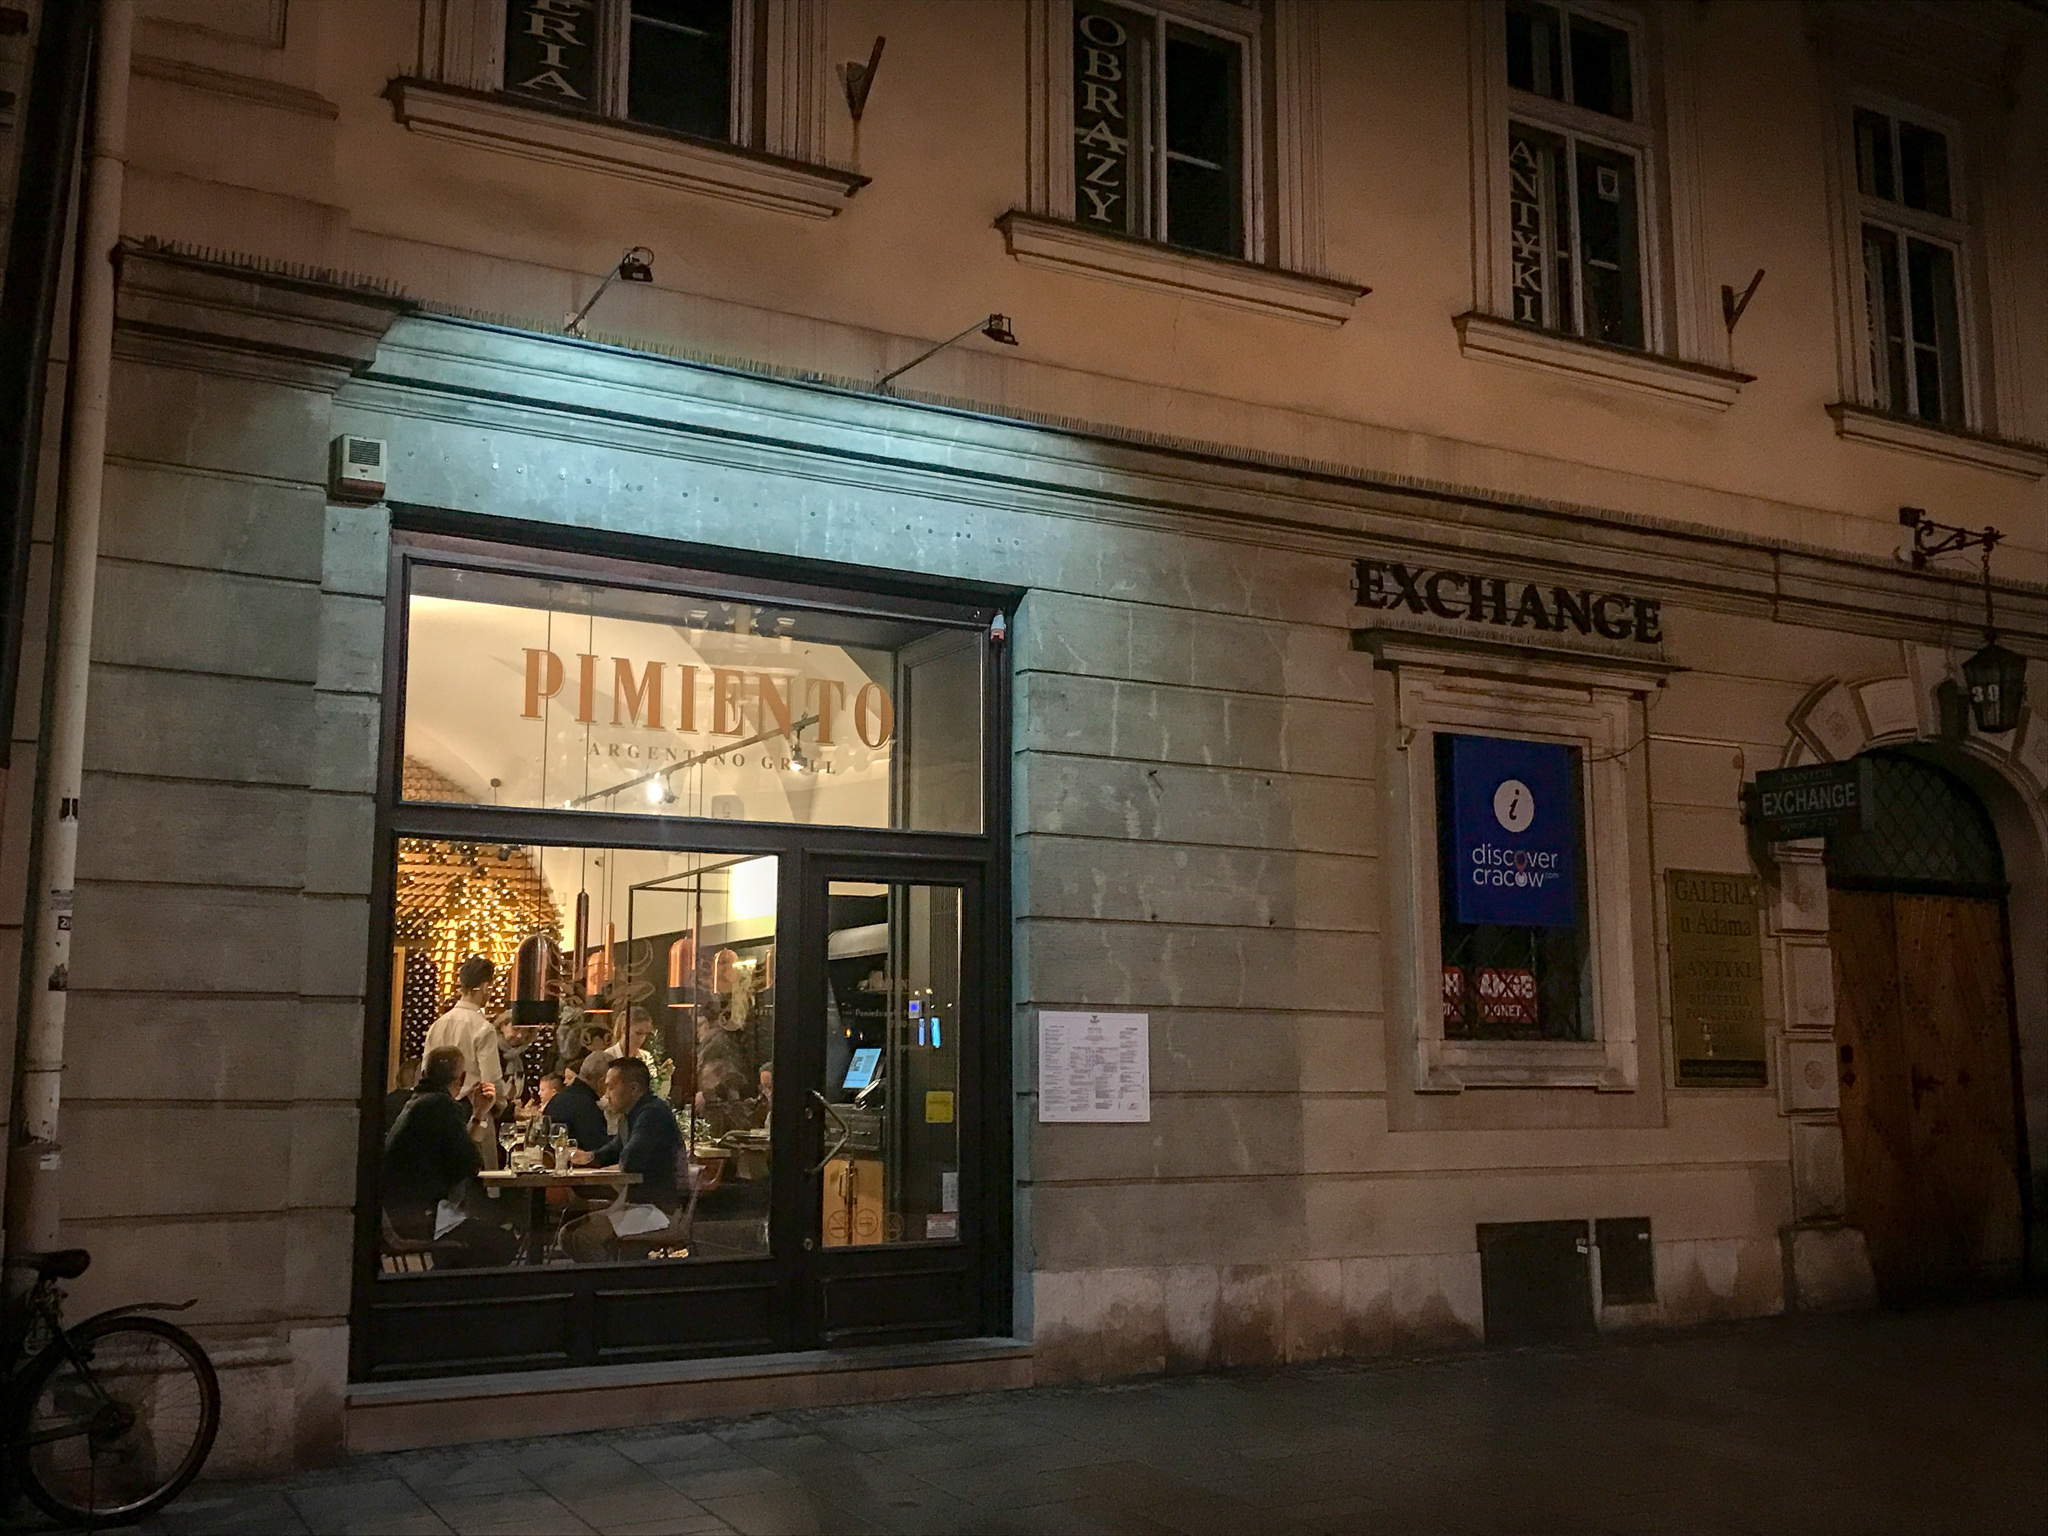 One of Pimiento's newest locations on Krakow's Main Square.